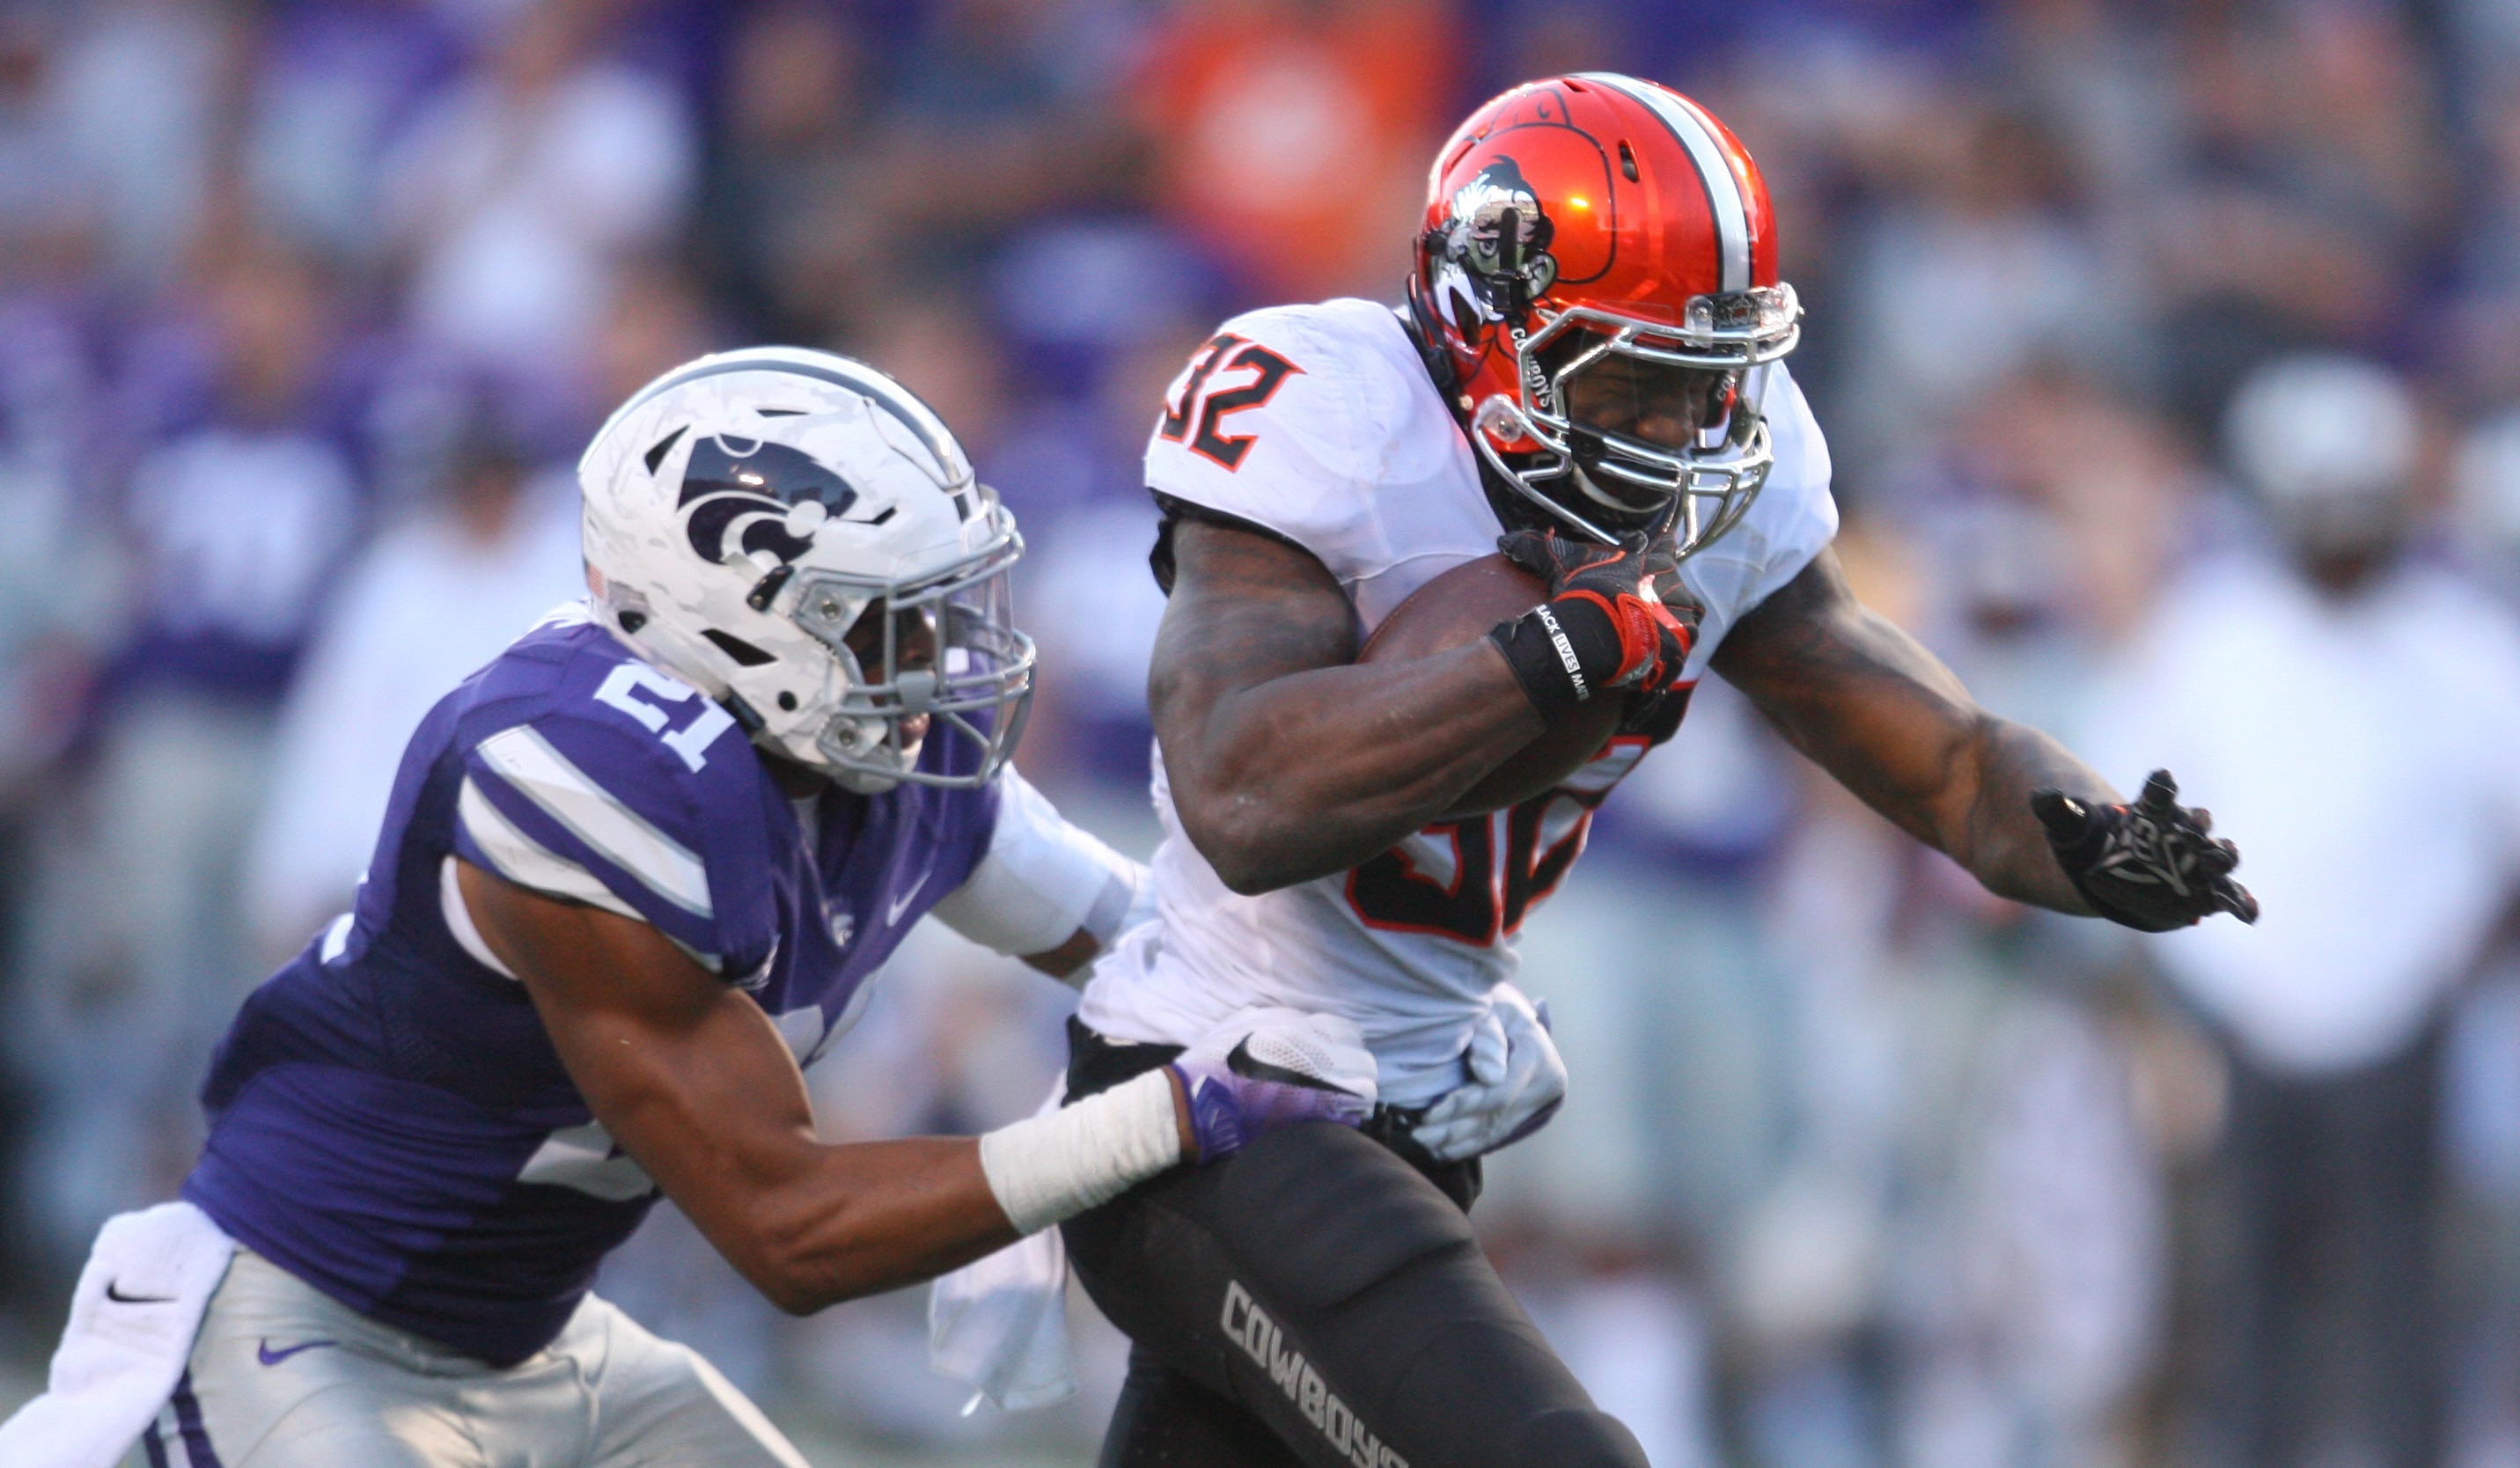 013c61d137b8 Winners and Losers From The Oklahoma State-Kansas State Game ...